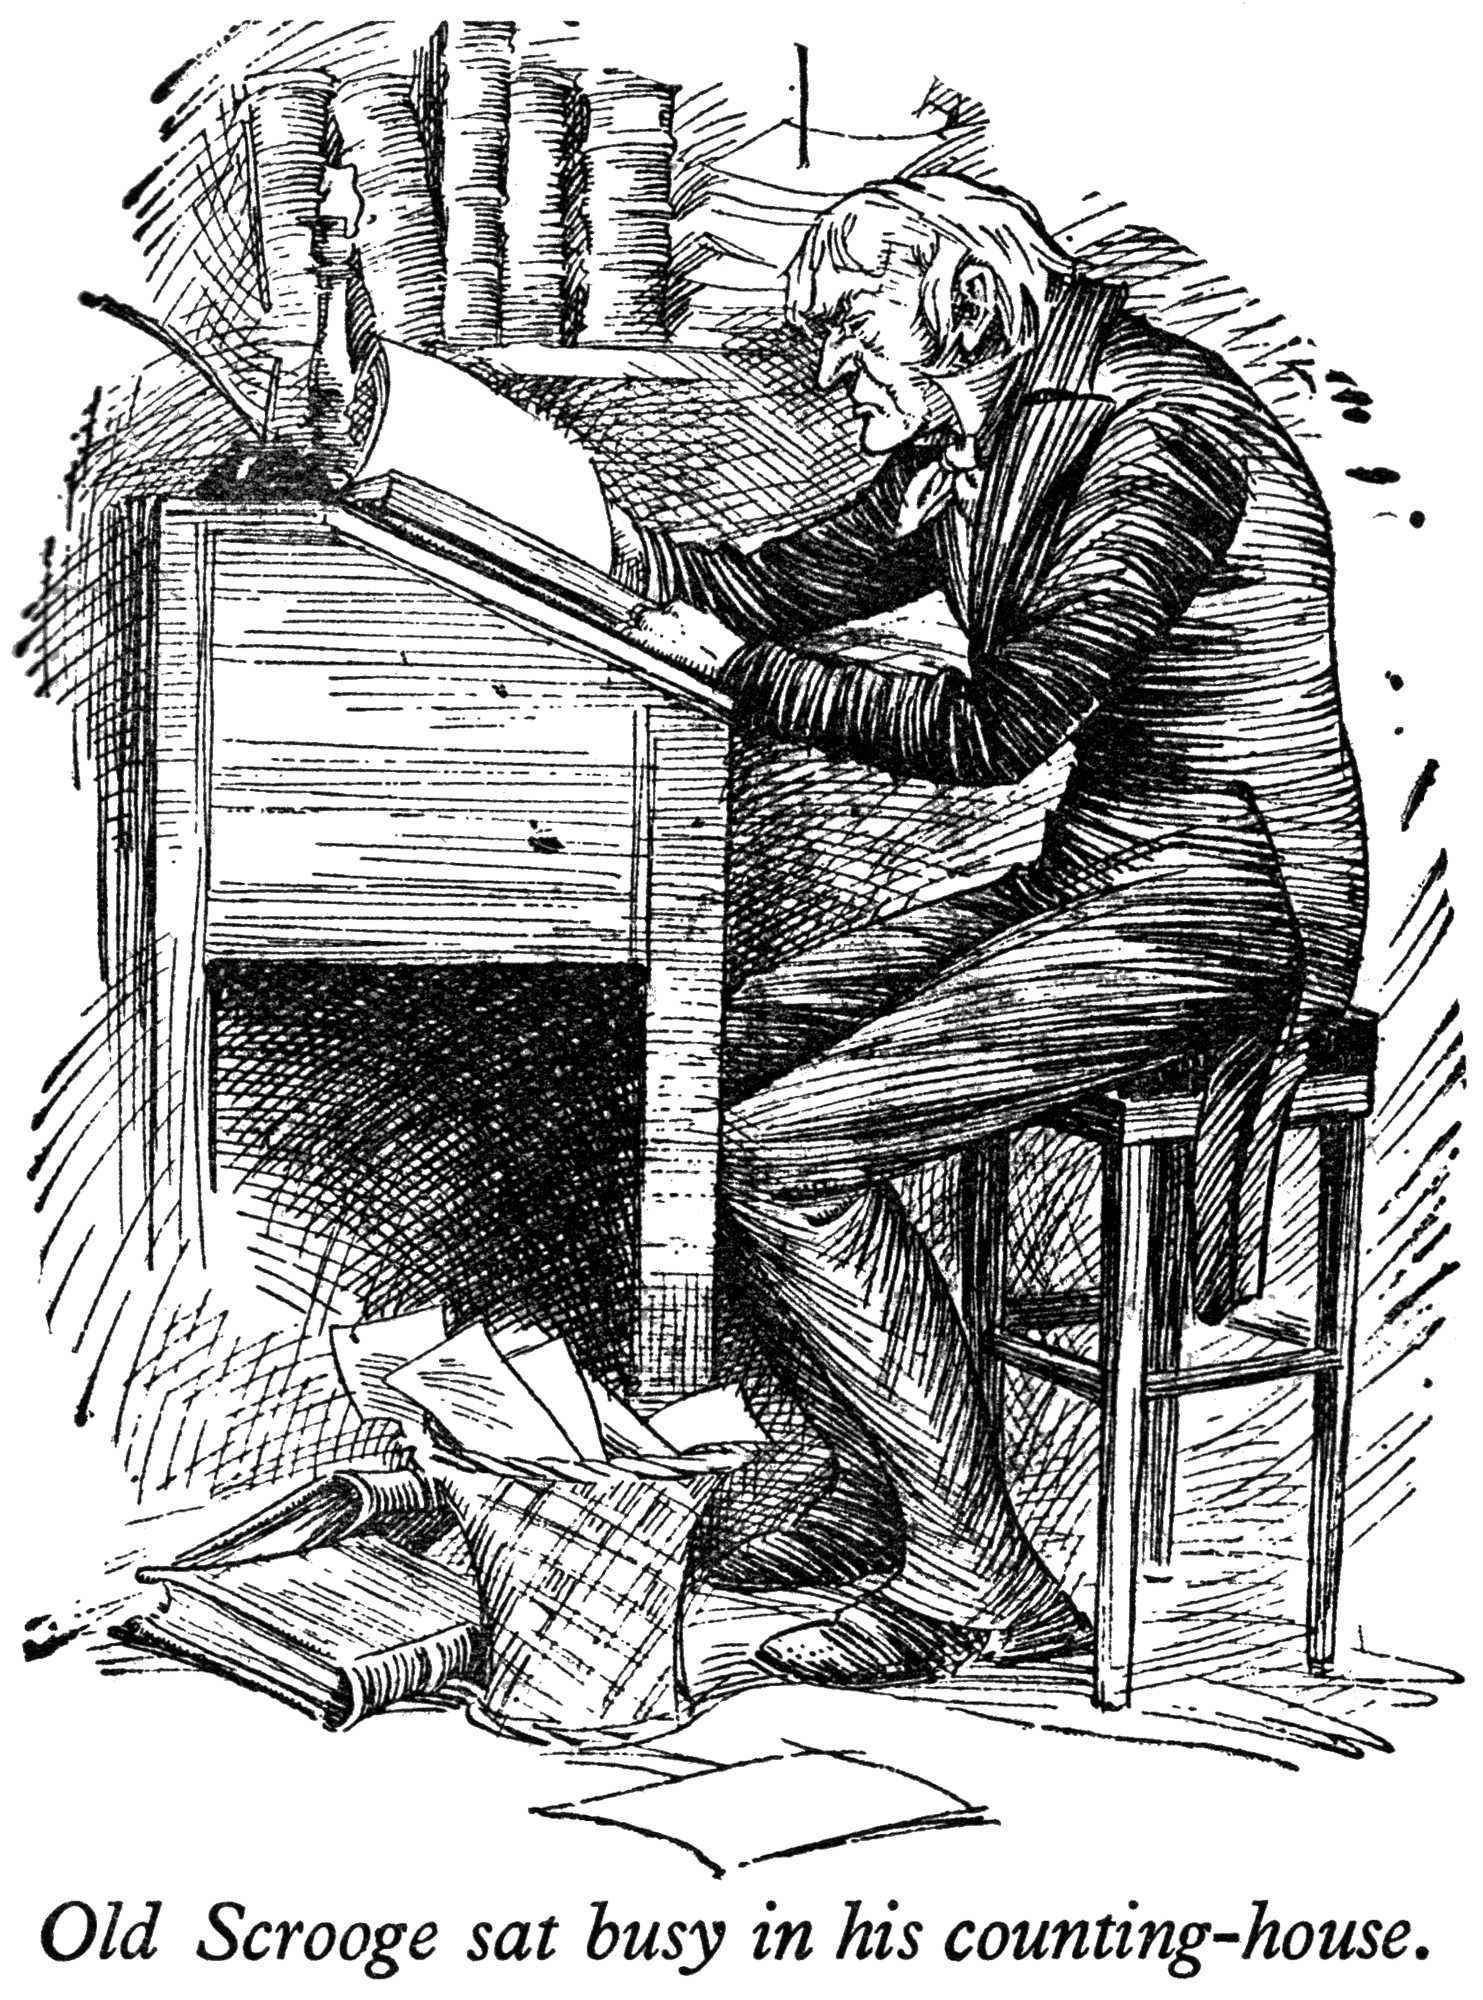 Is Charles Dickens' 'A Christmas Carol' Really a Song?